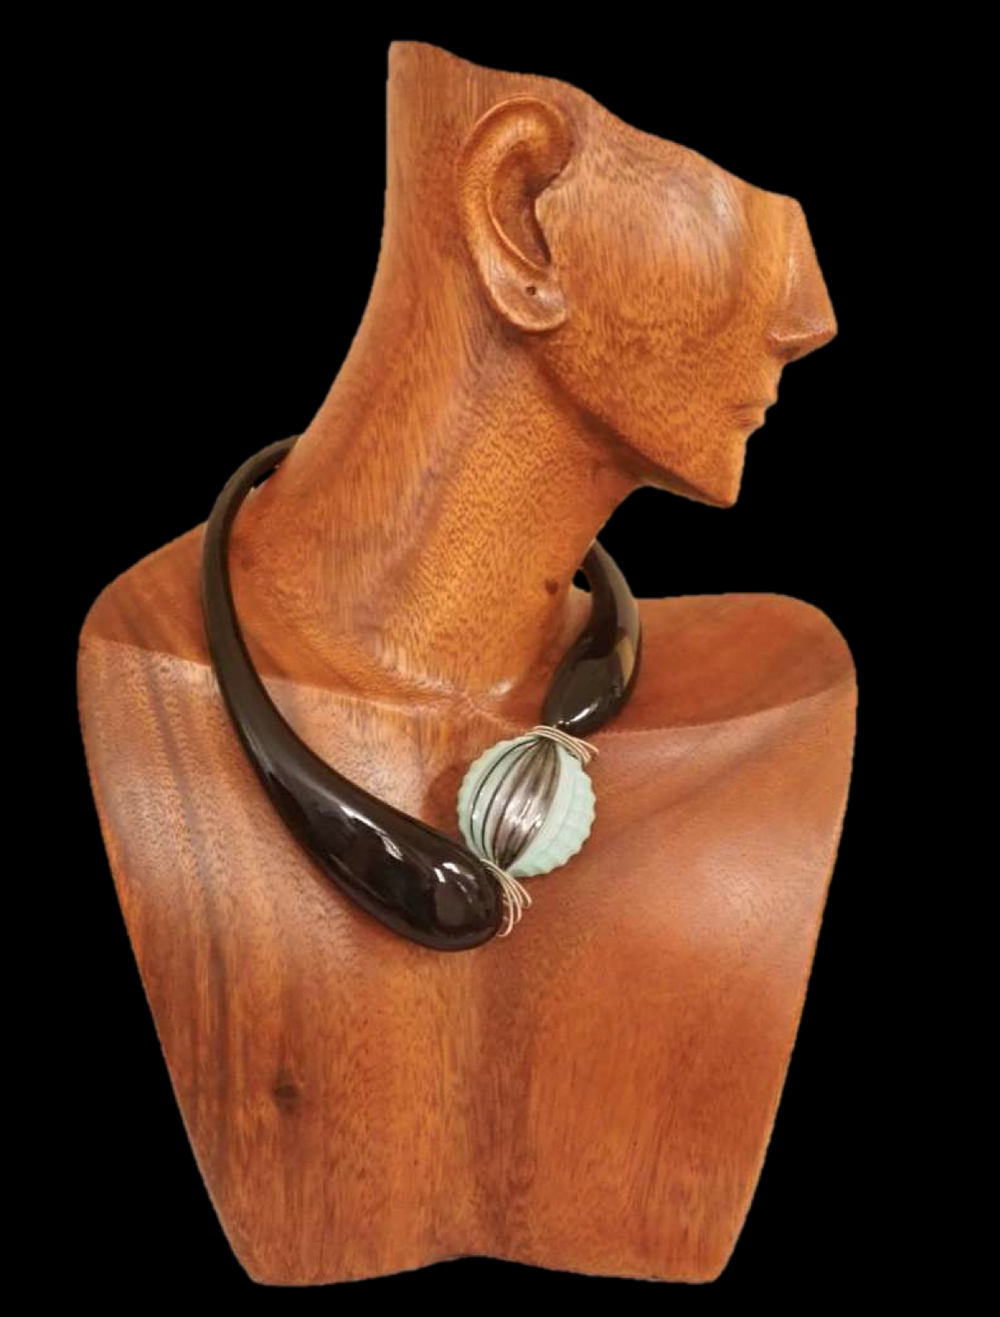 Joan Greiff is originally from Canada and now lives in Santa Monica. She has studied art and jewelry design and her neck-art pieces are sold in boutiques in California.